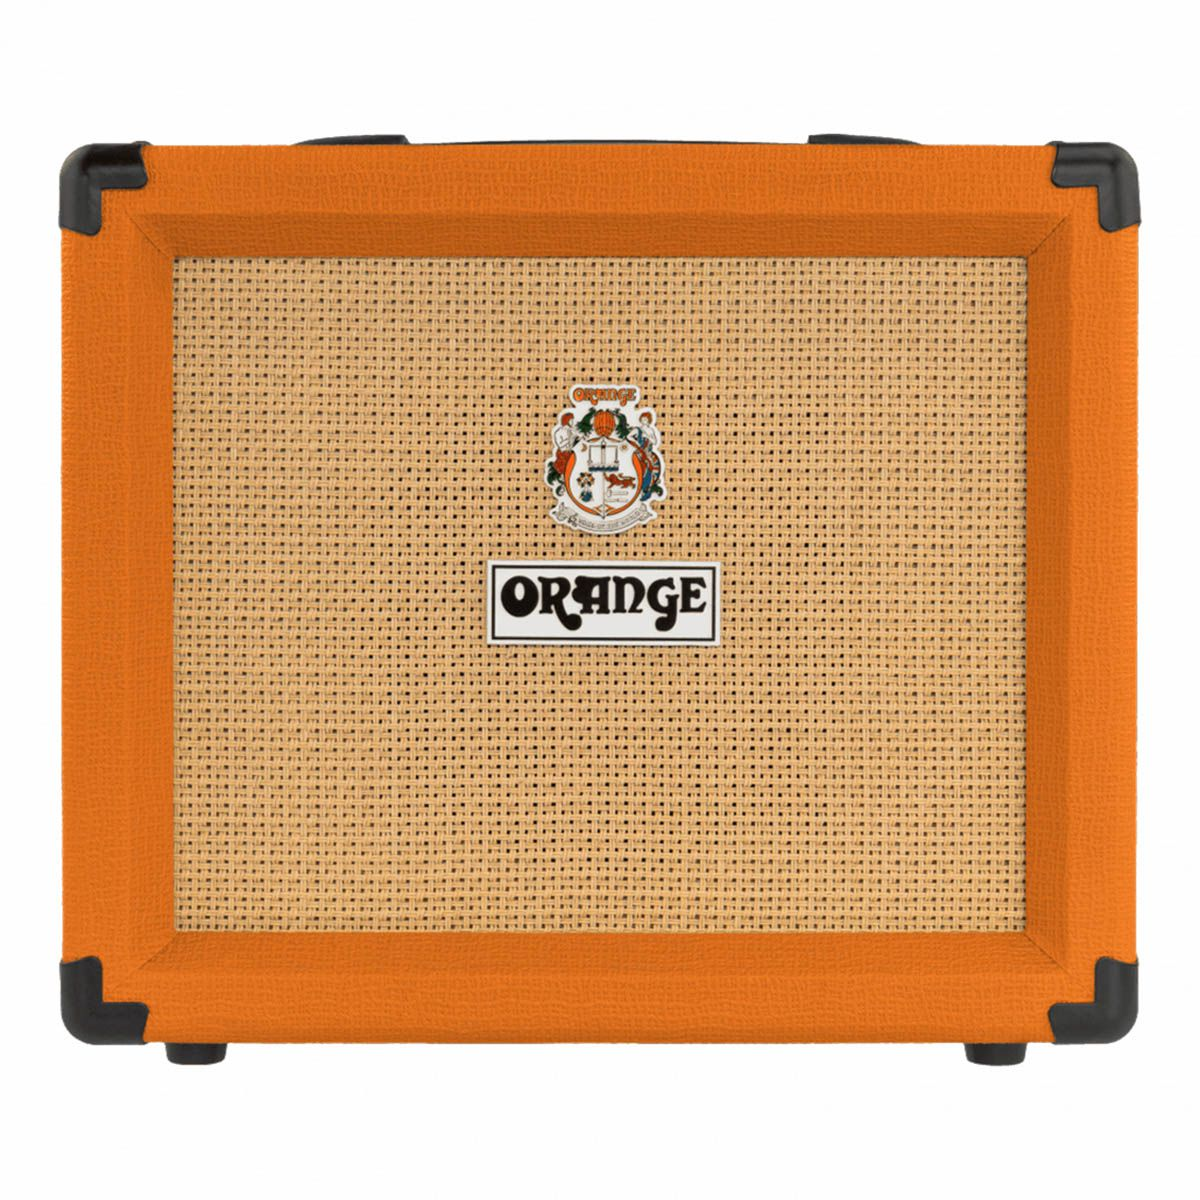 Caixa Amplificada Orange Crush 20W 1x8 para Guitarra